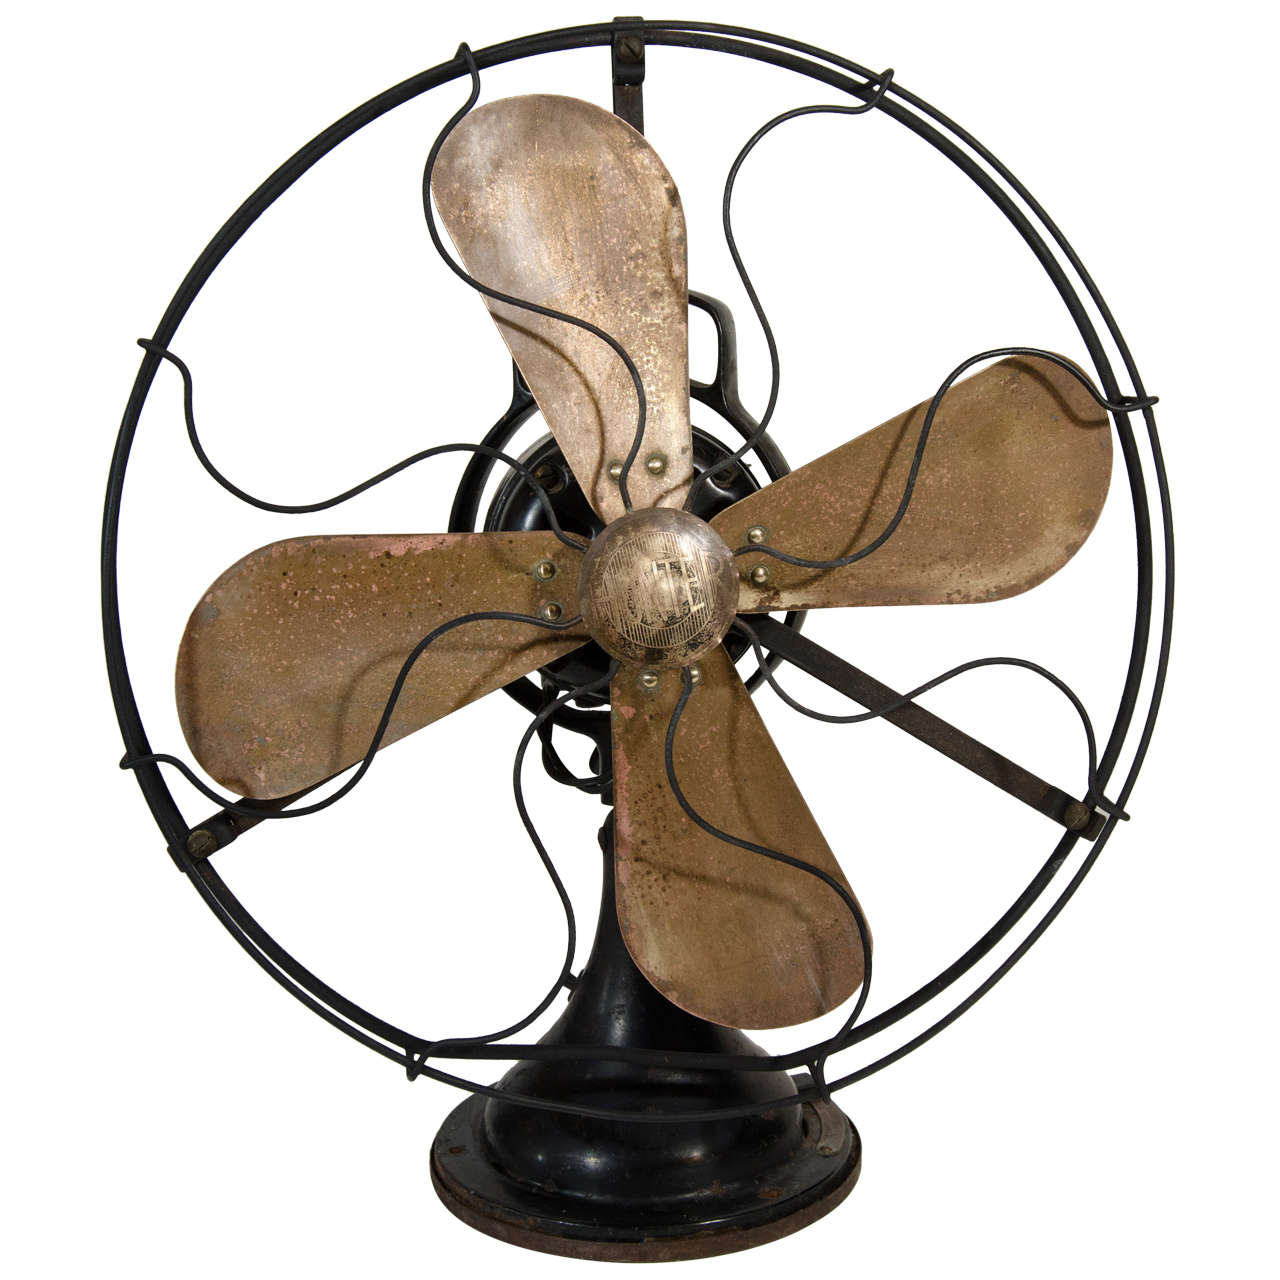 1930s Machine Age Era Table Fan For Sale At 1stdibs